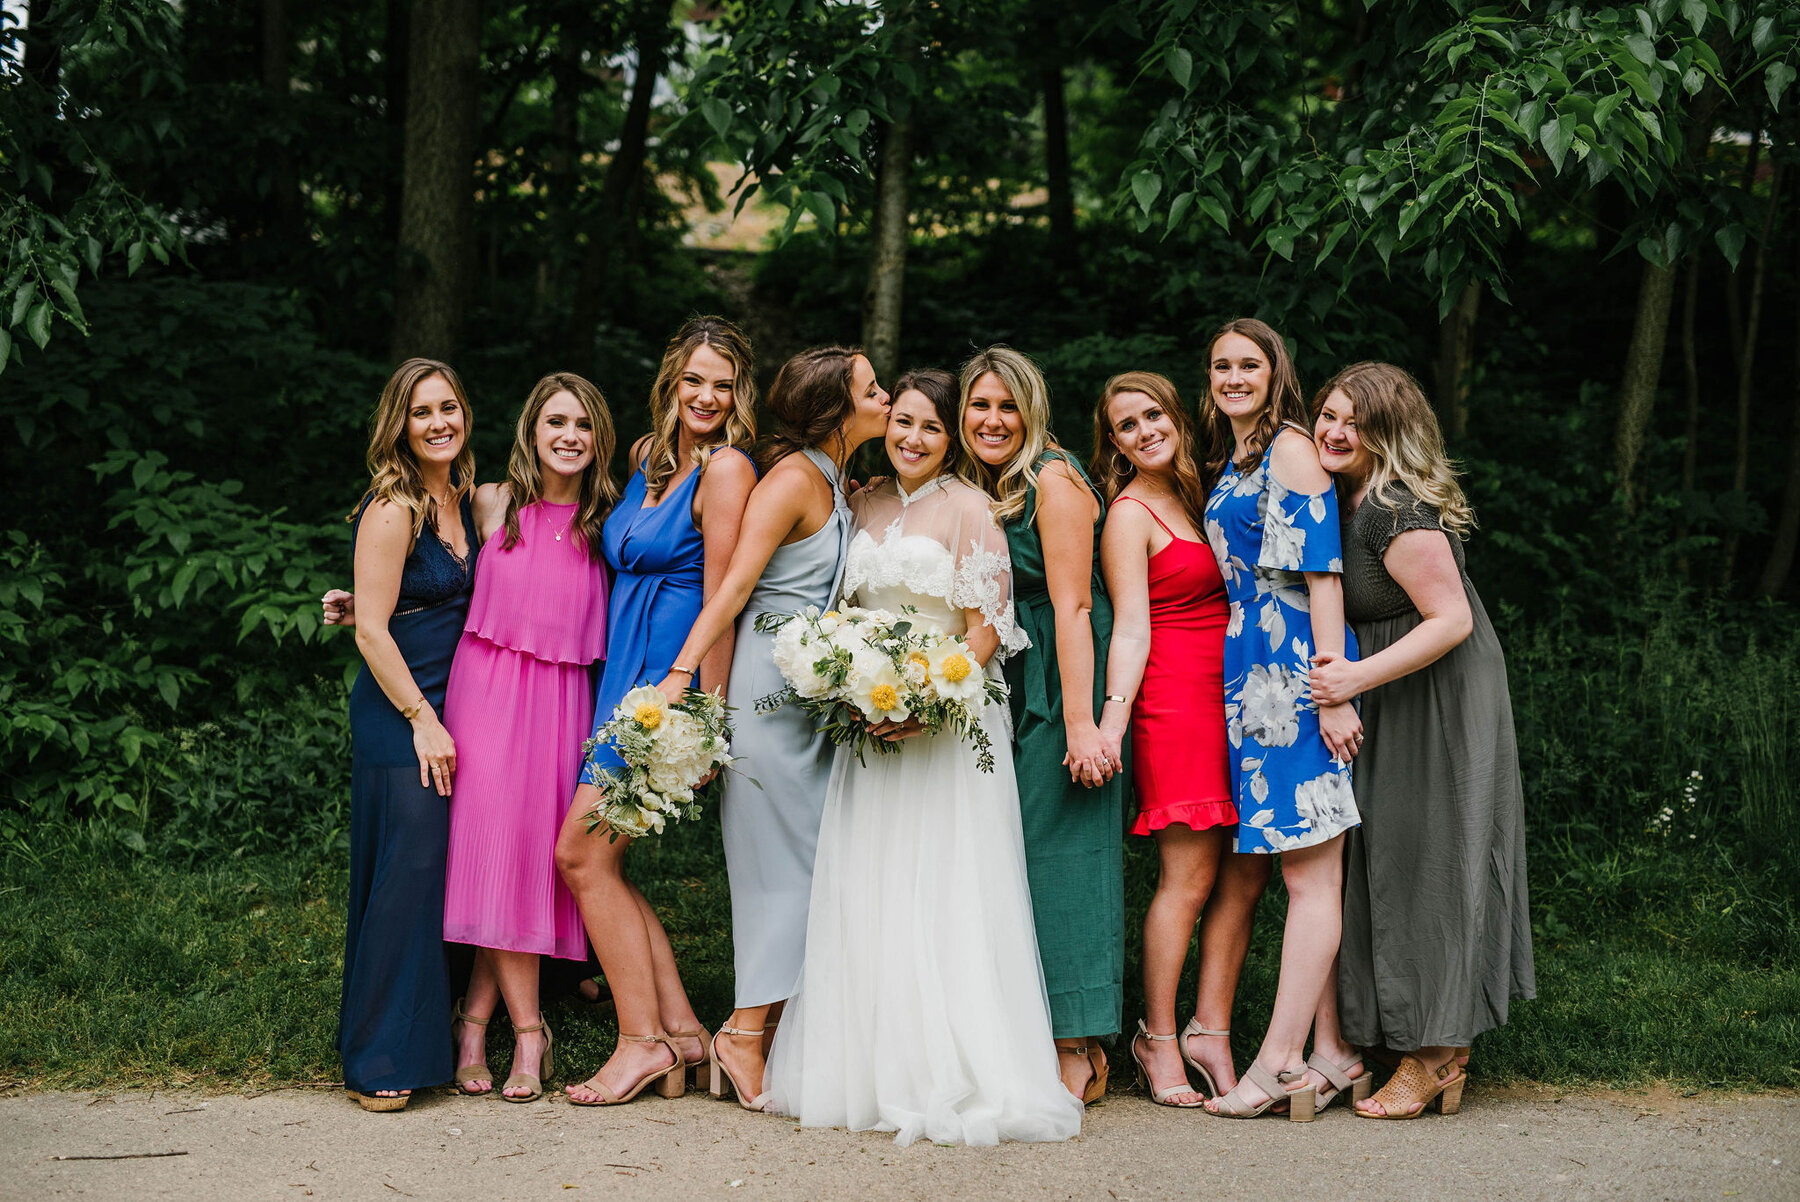 Clair-Jury-bridesmaids-love-hunters.jpg